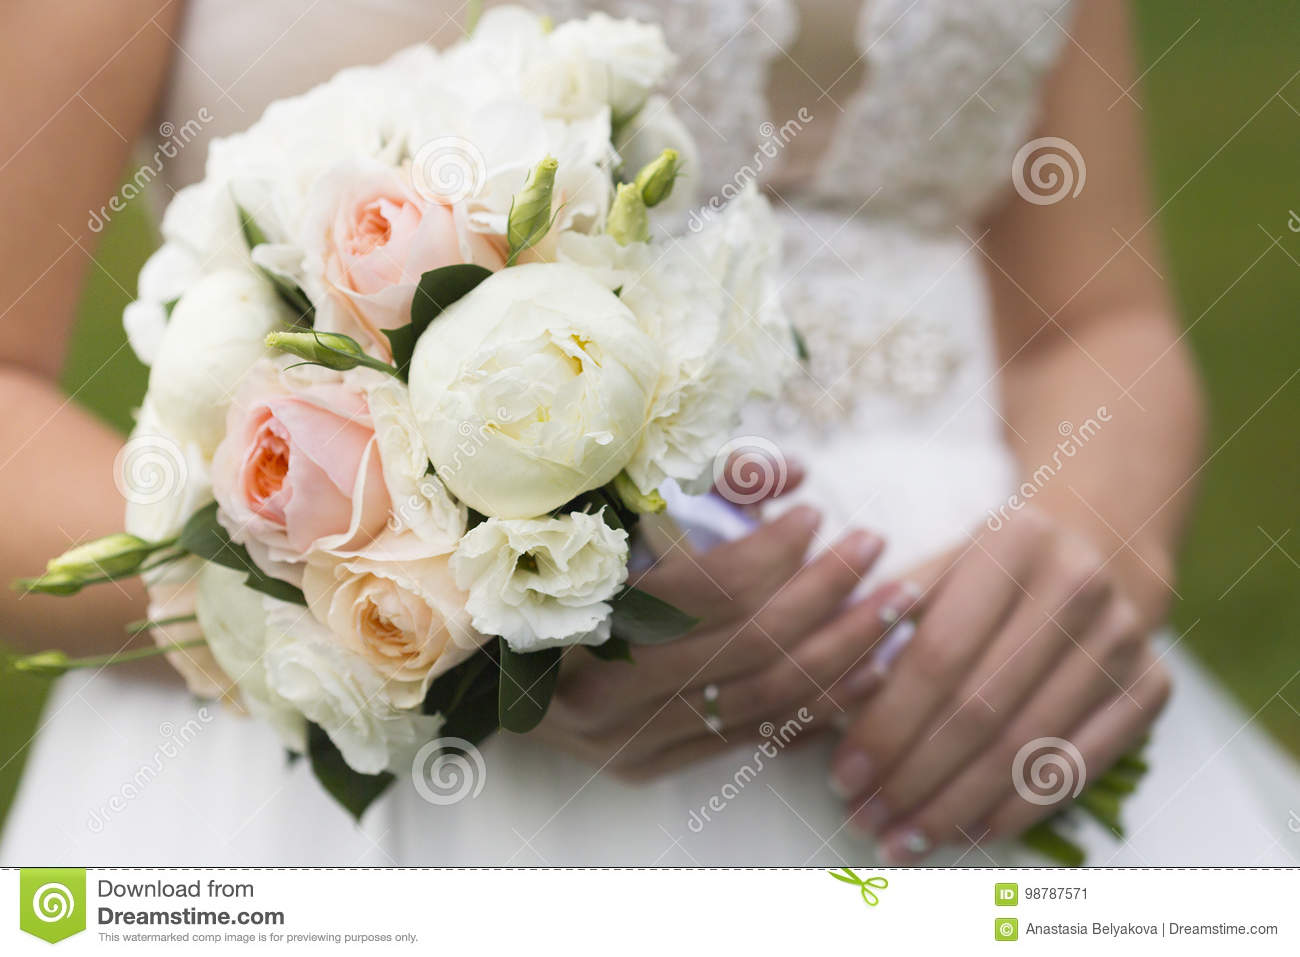 Wedding Bouquet Of White And Pale Pink Rose In Hands Of Bride Stock Image Image Of Ring Silver 98787571